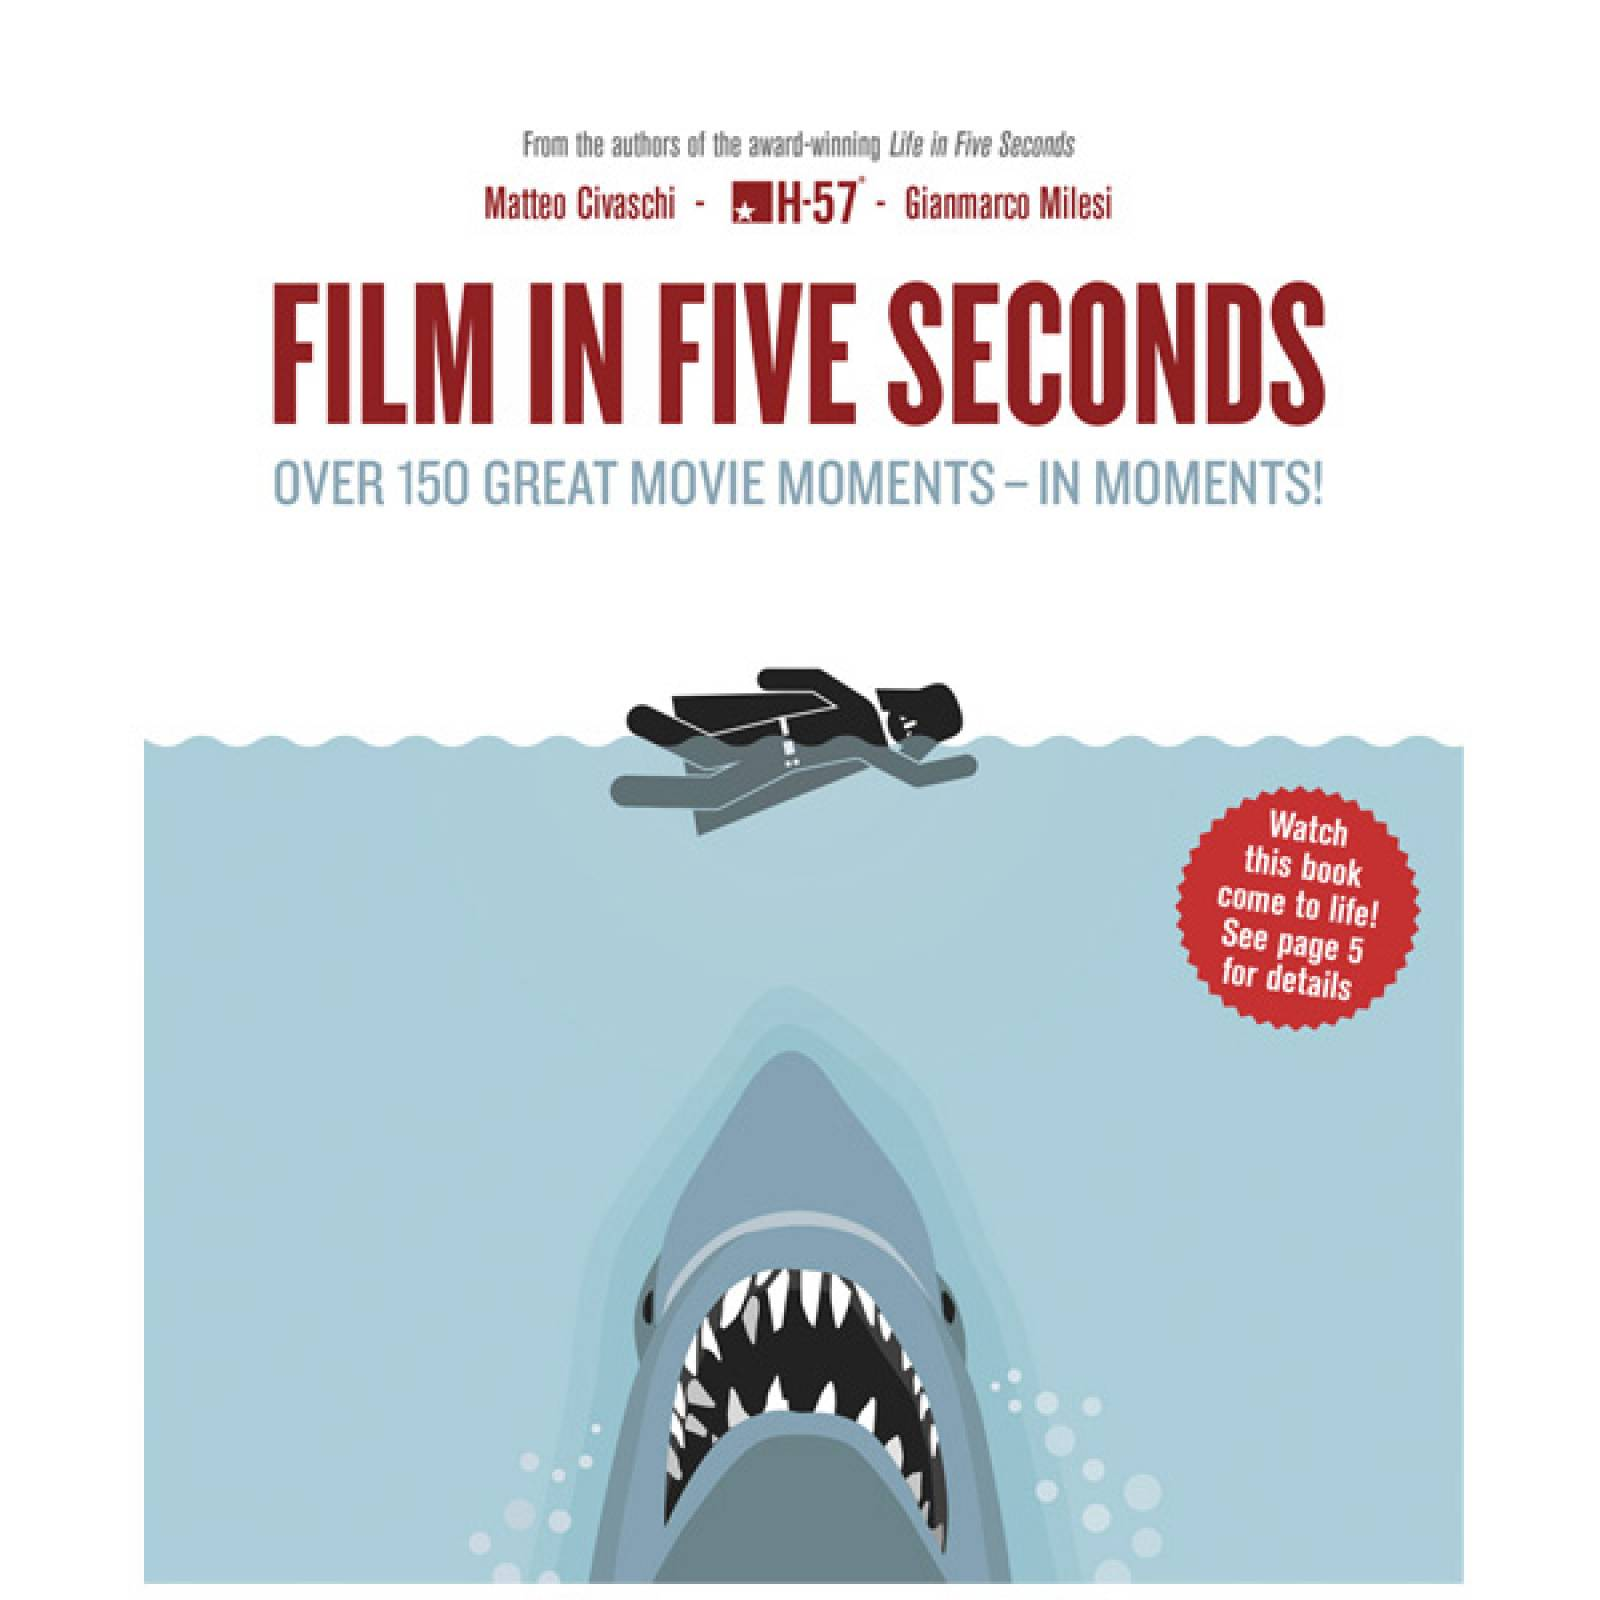 Film In Five Seconds Book thumbnails